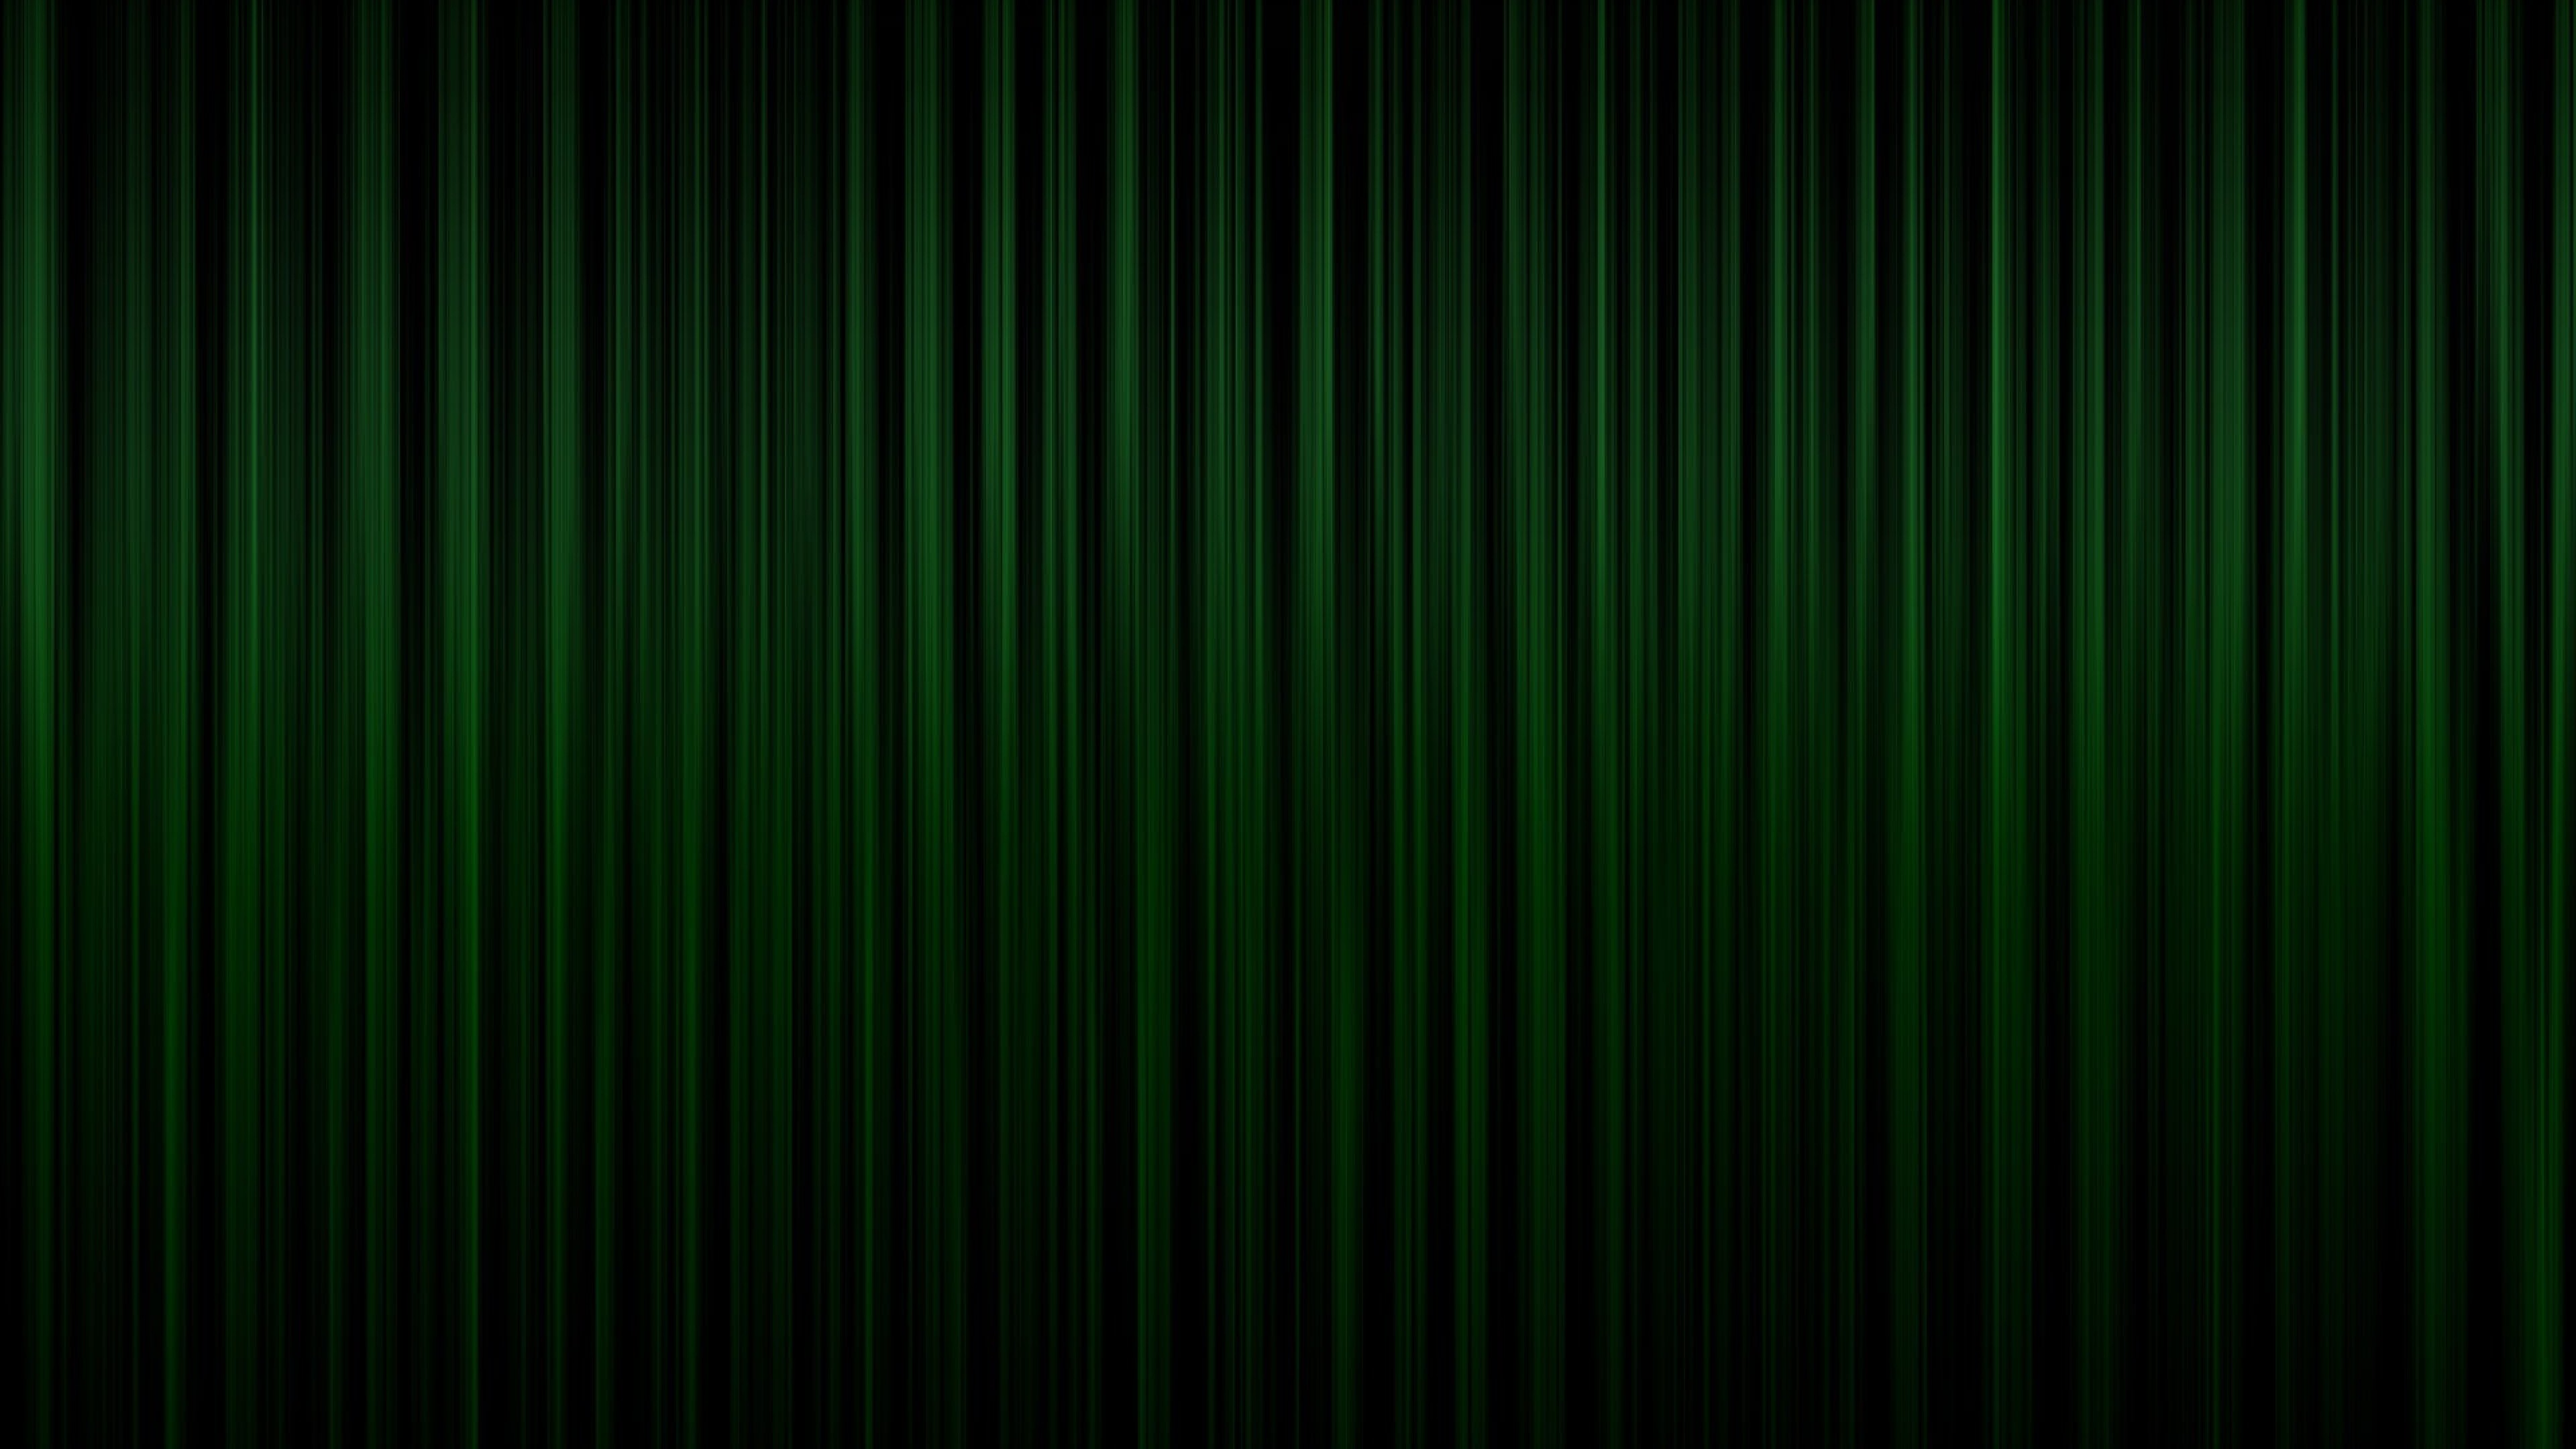 3840x2160 dark green backgrounds